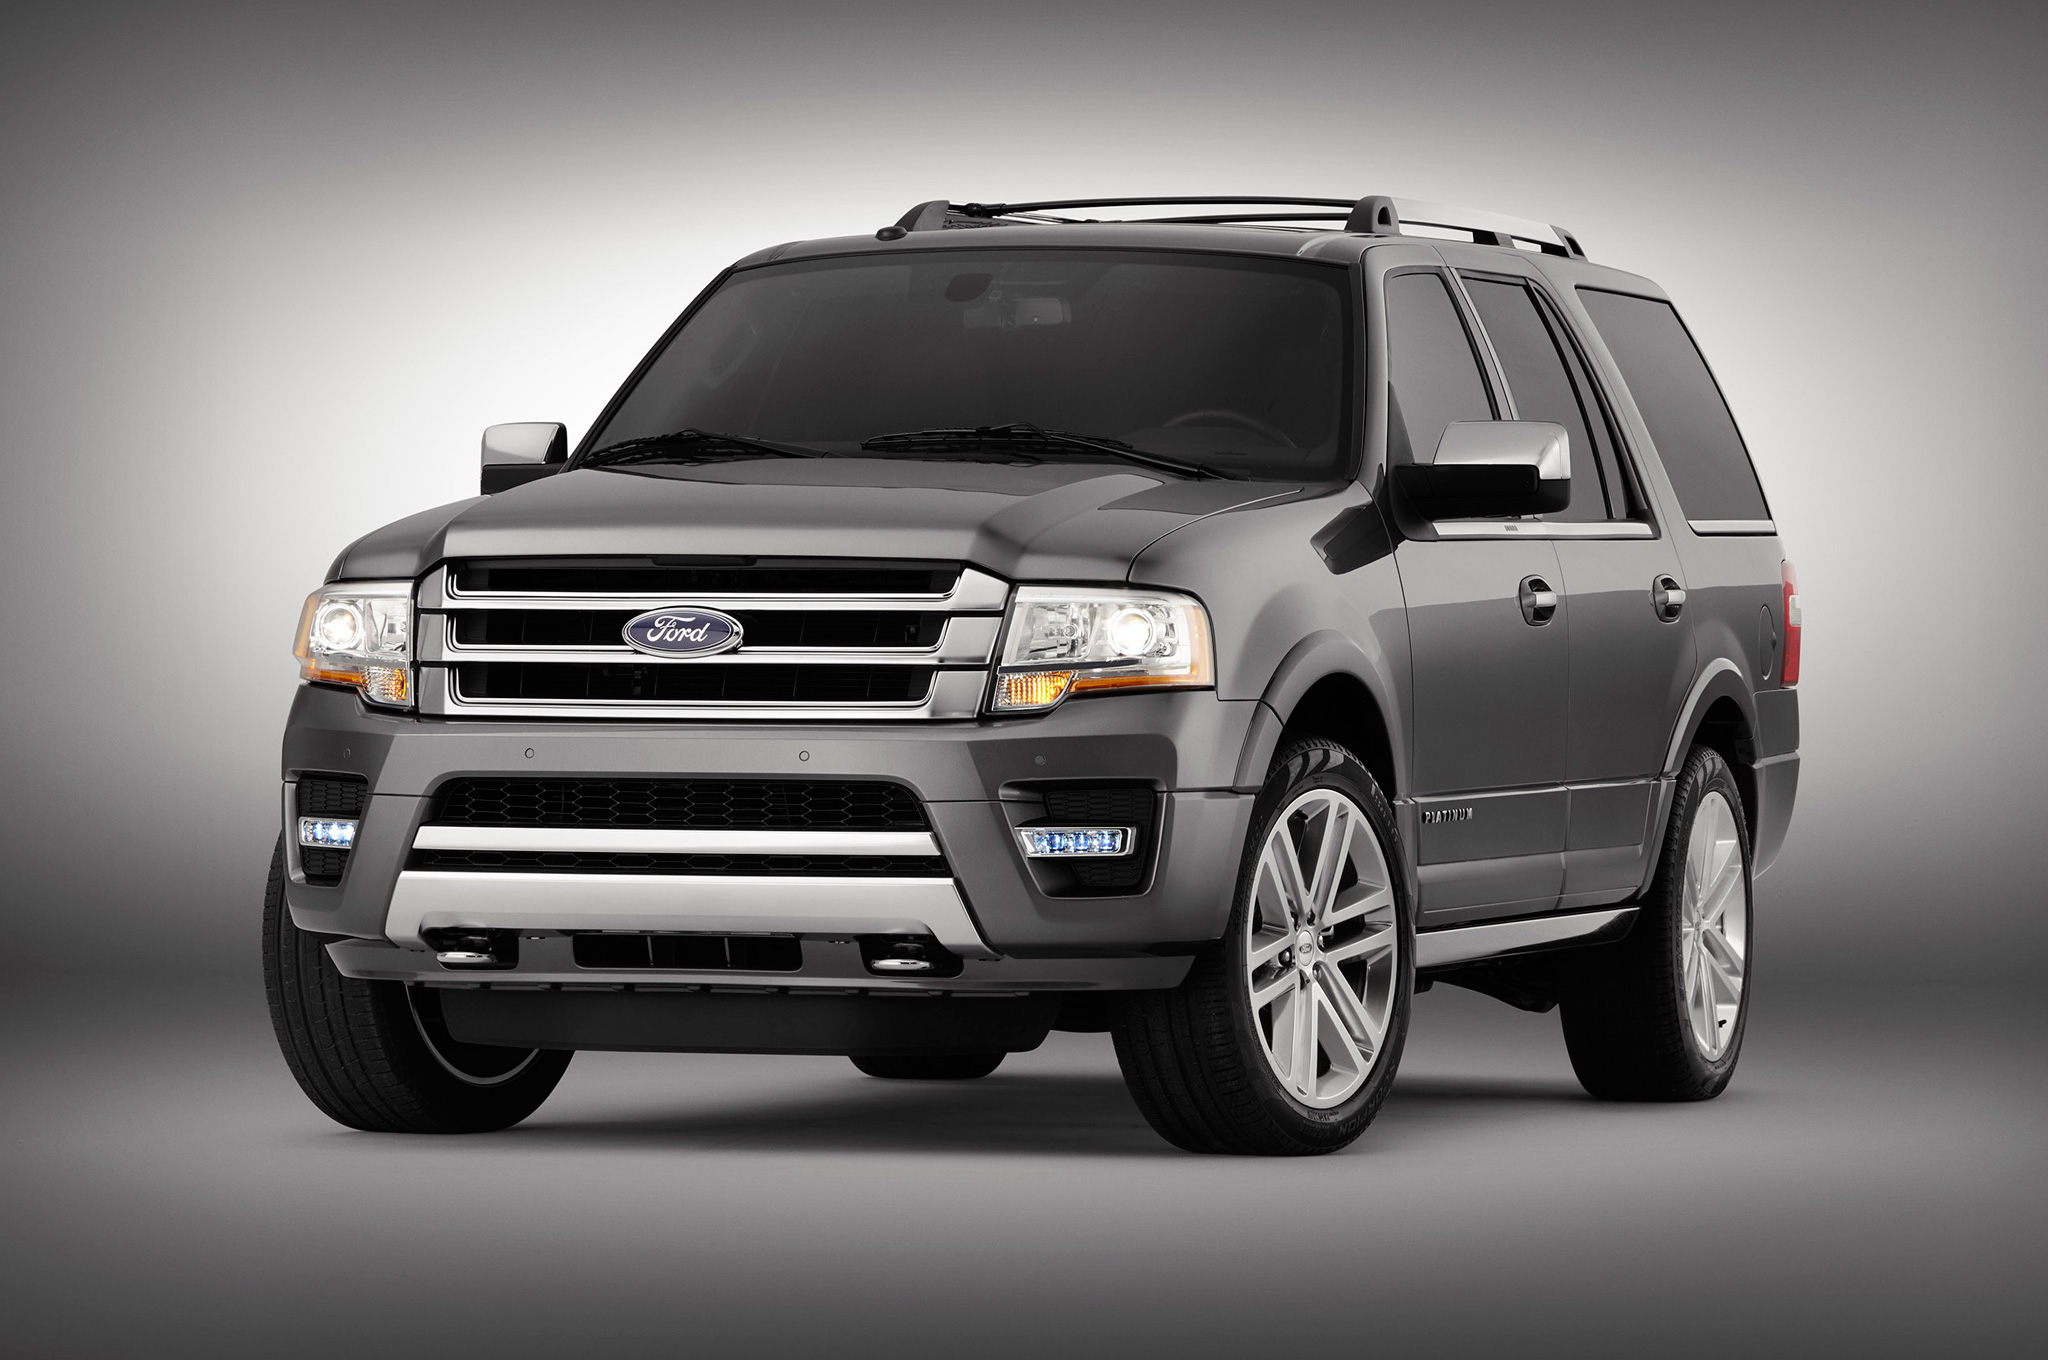 2015 Ford Expedition #16